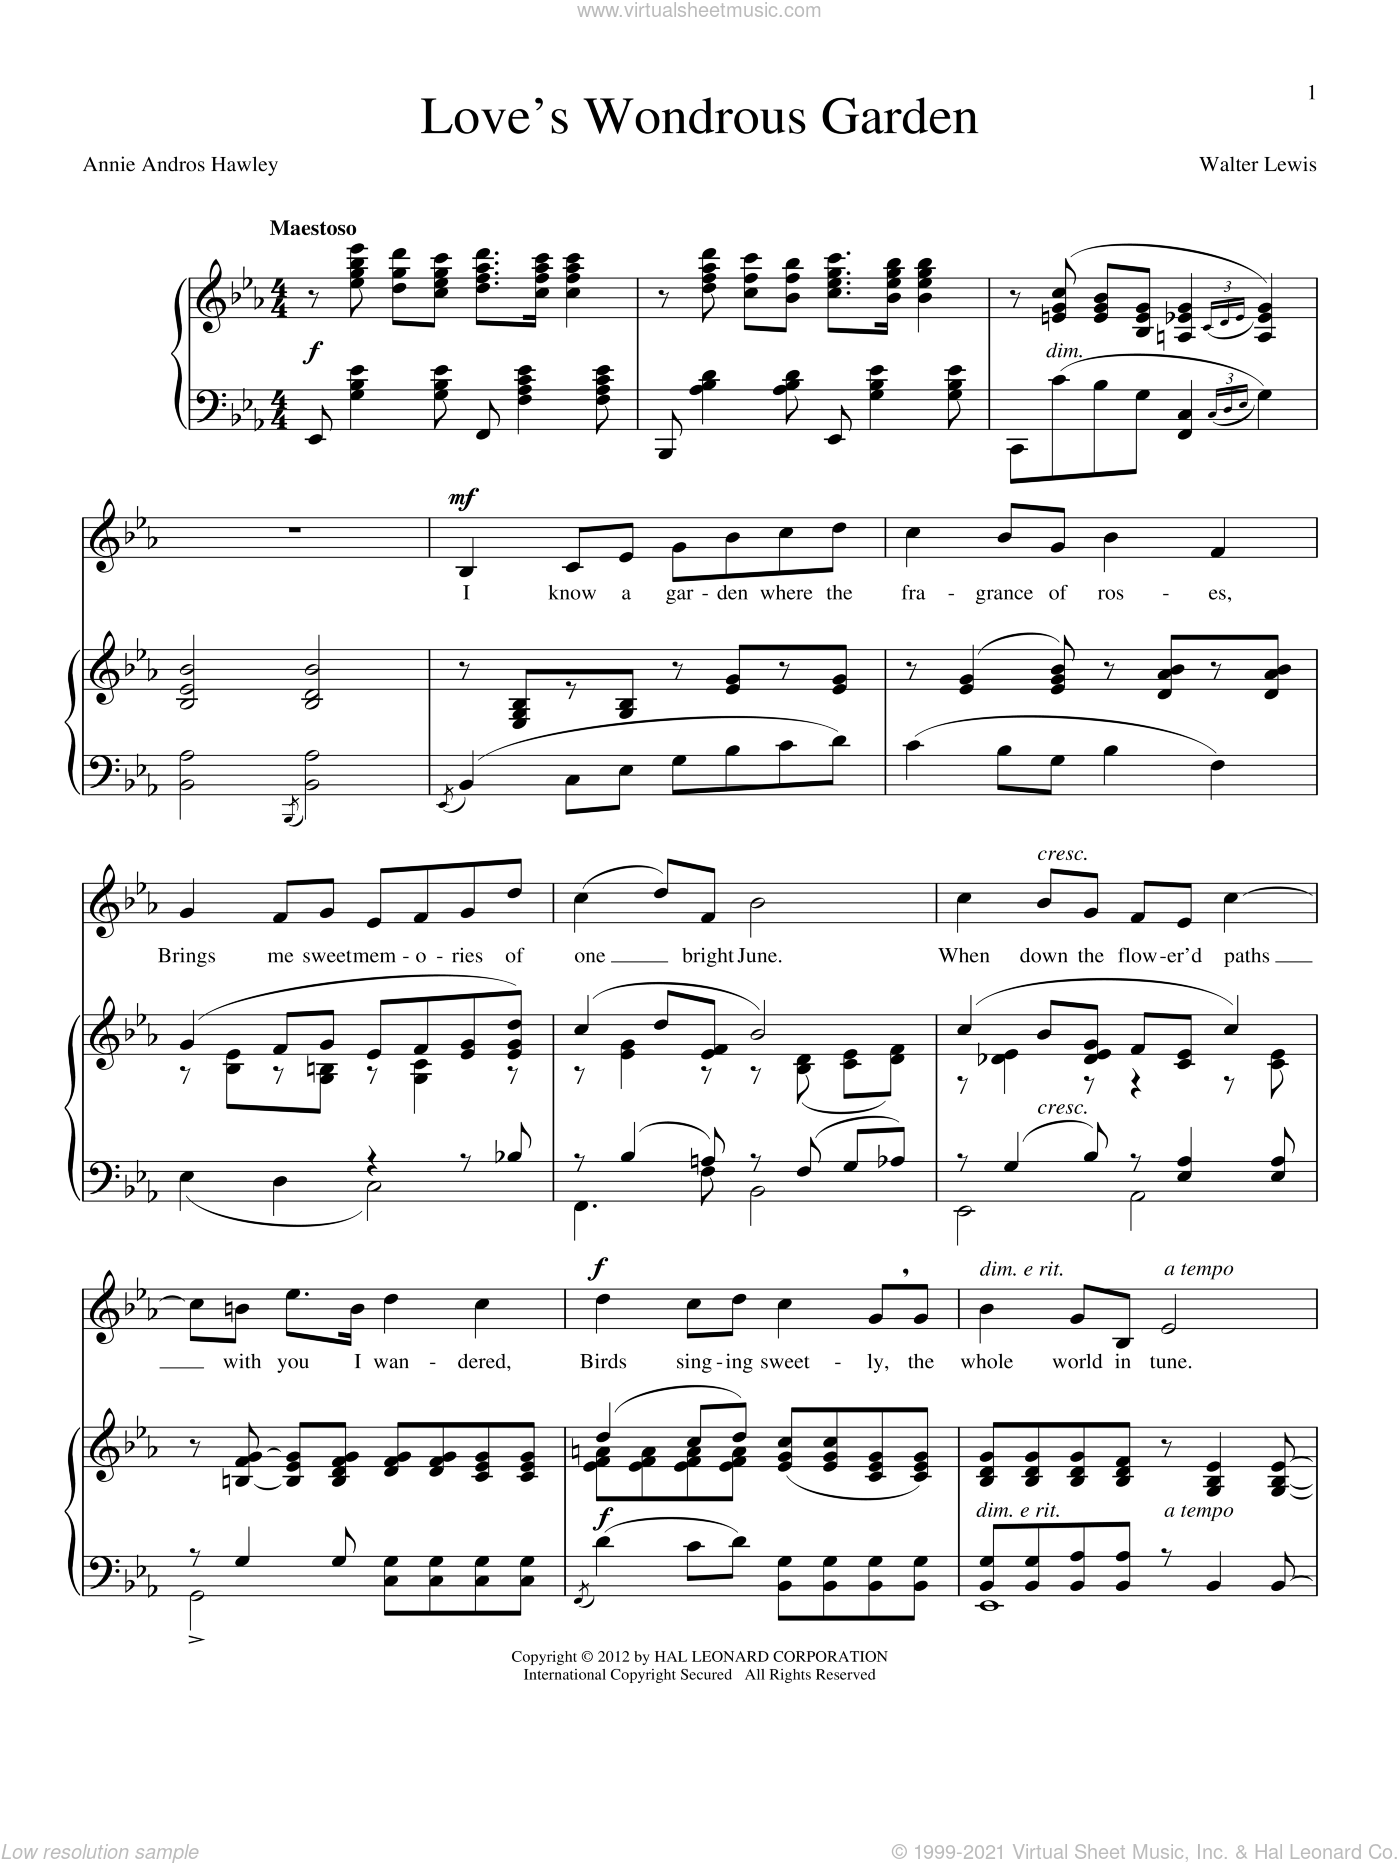 Love's Wondrous Garden sheet music for voice and piano by Annie Andros Hawley. Score Image Preview.